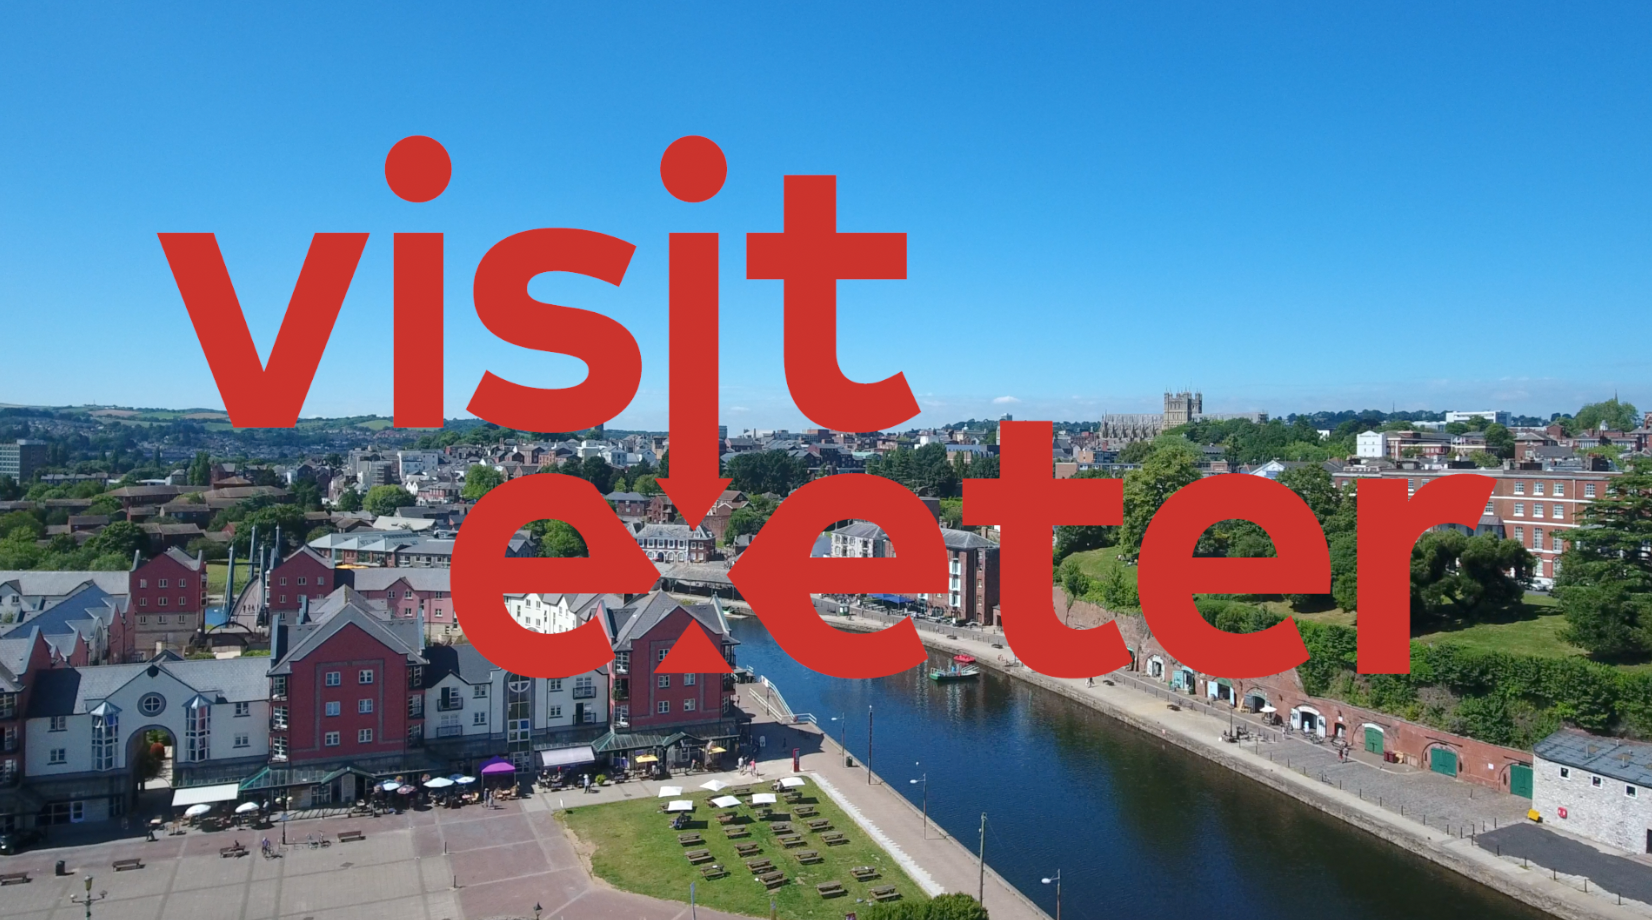 VISIT EXETER    EXETER TOURISM CAMPAIGN